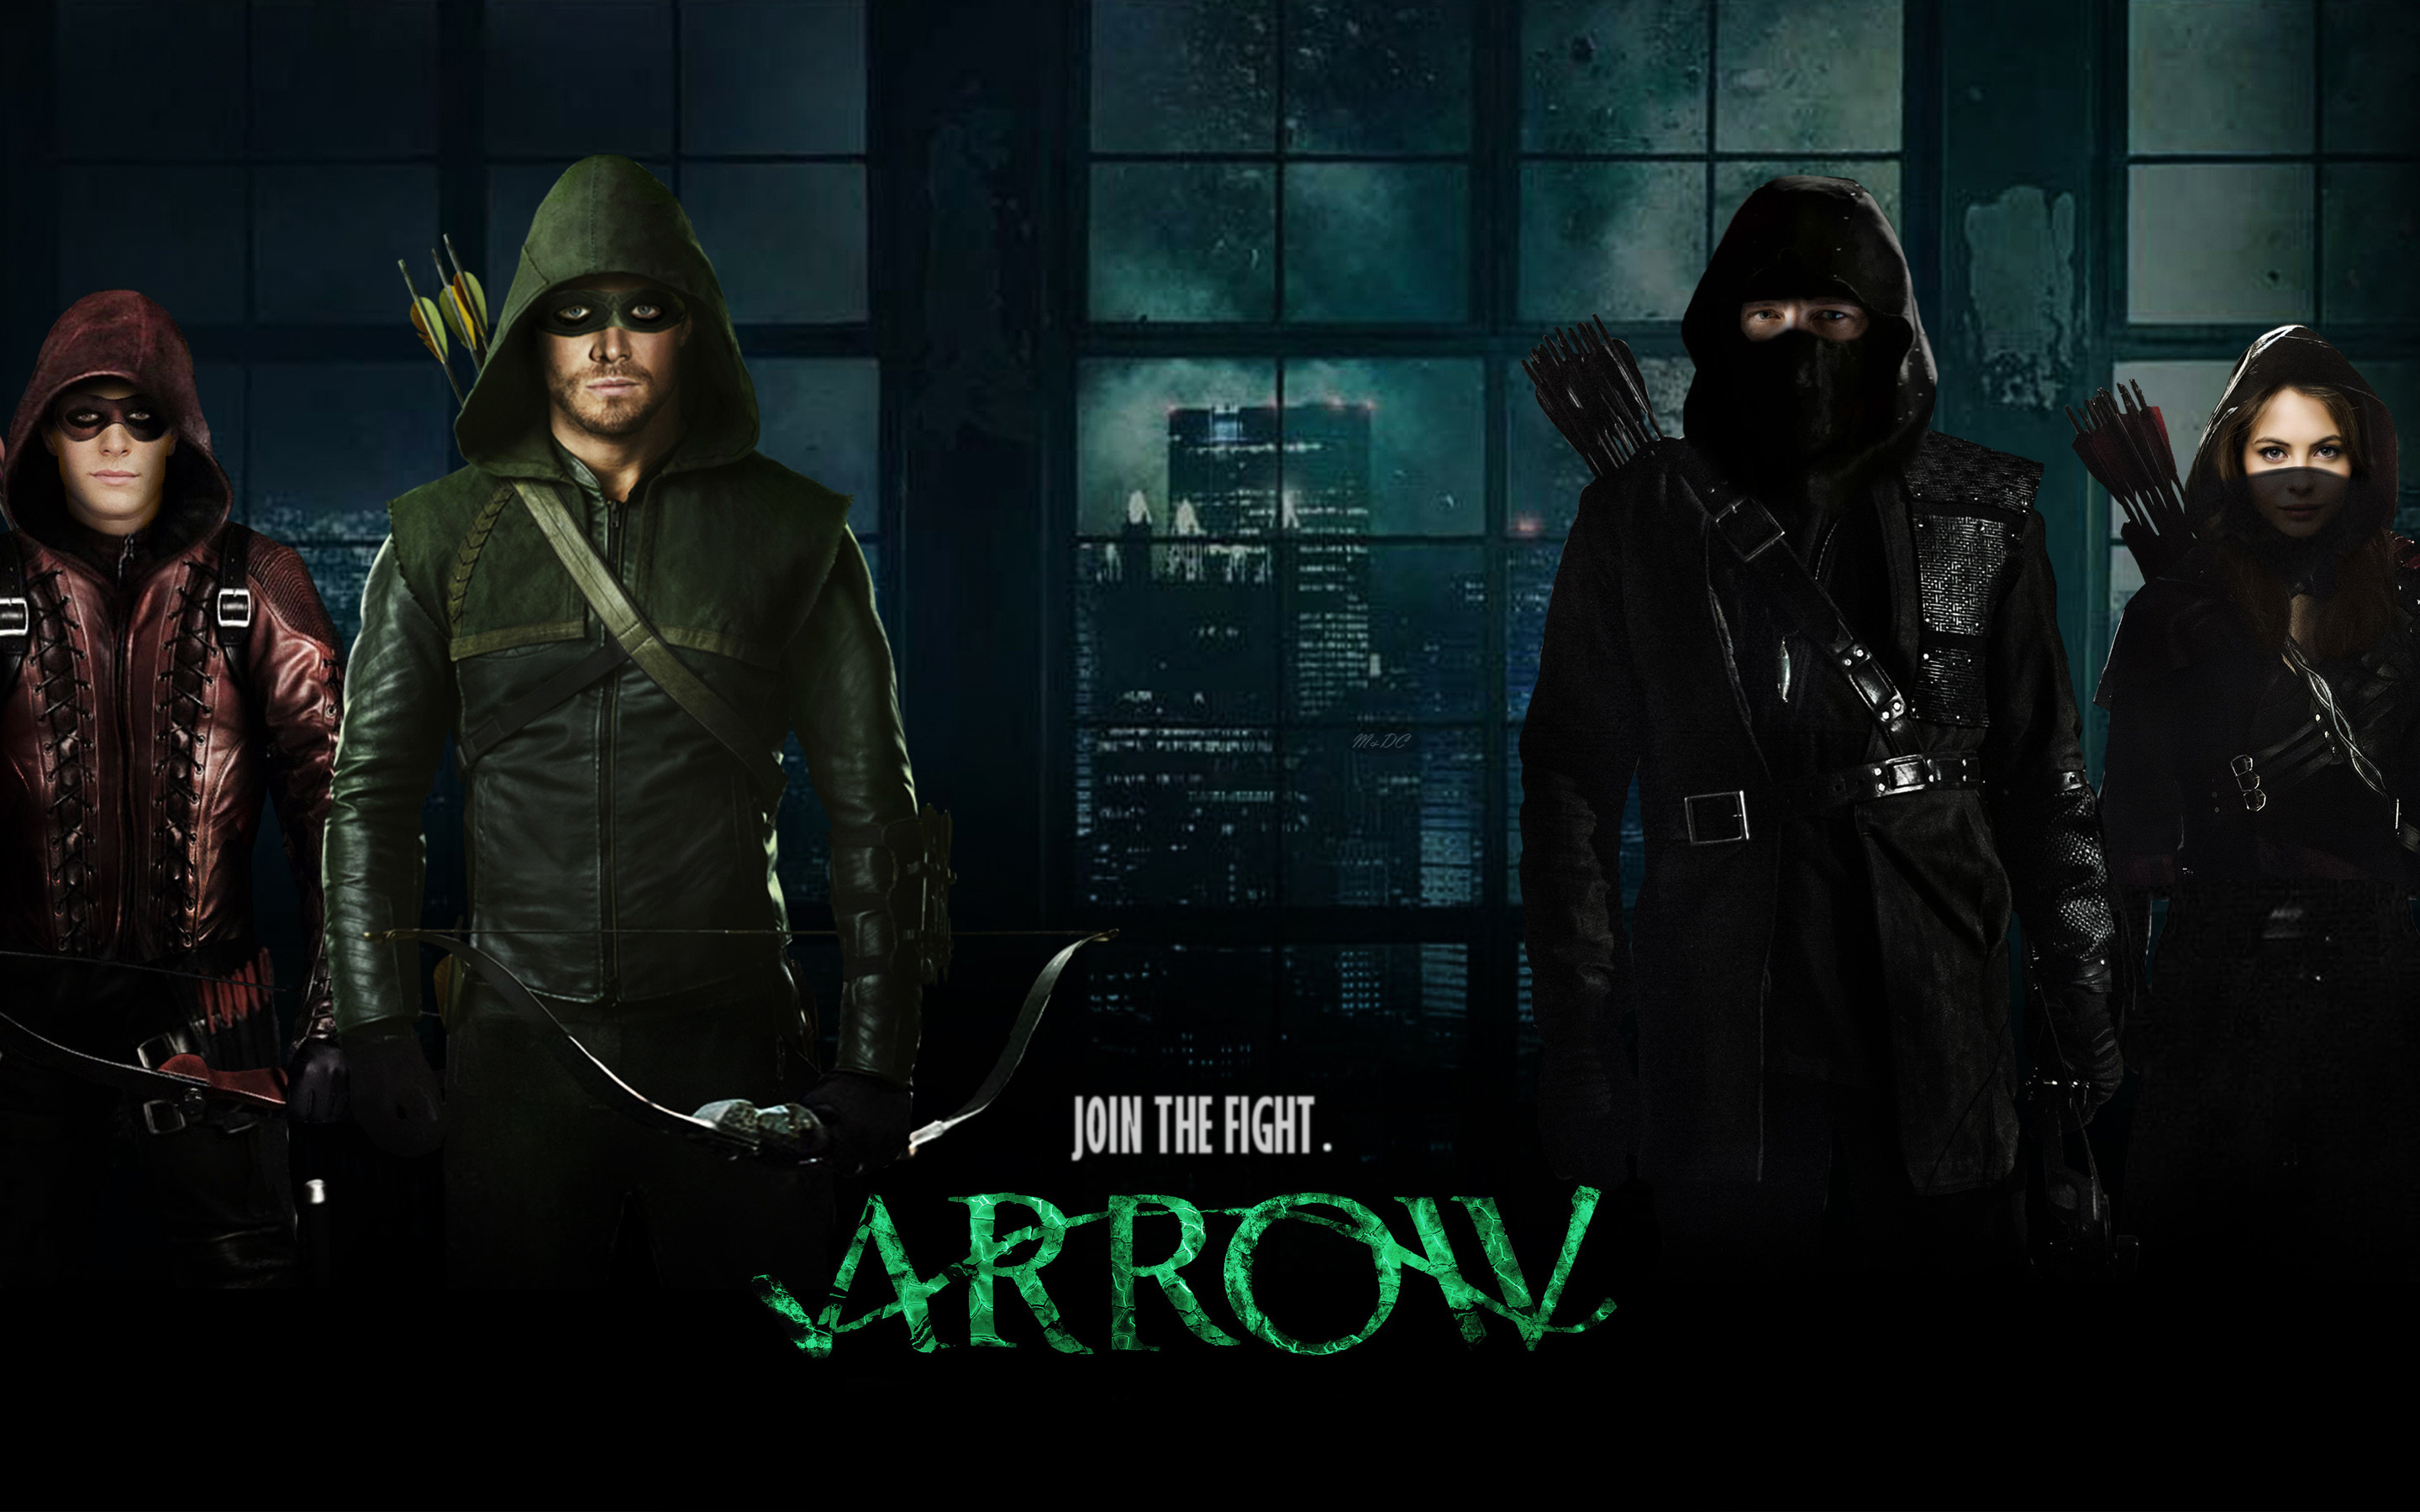 2880x1800 Arrow Widescreen Wallpaper